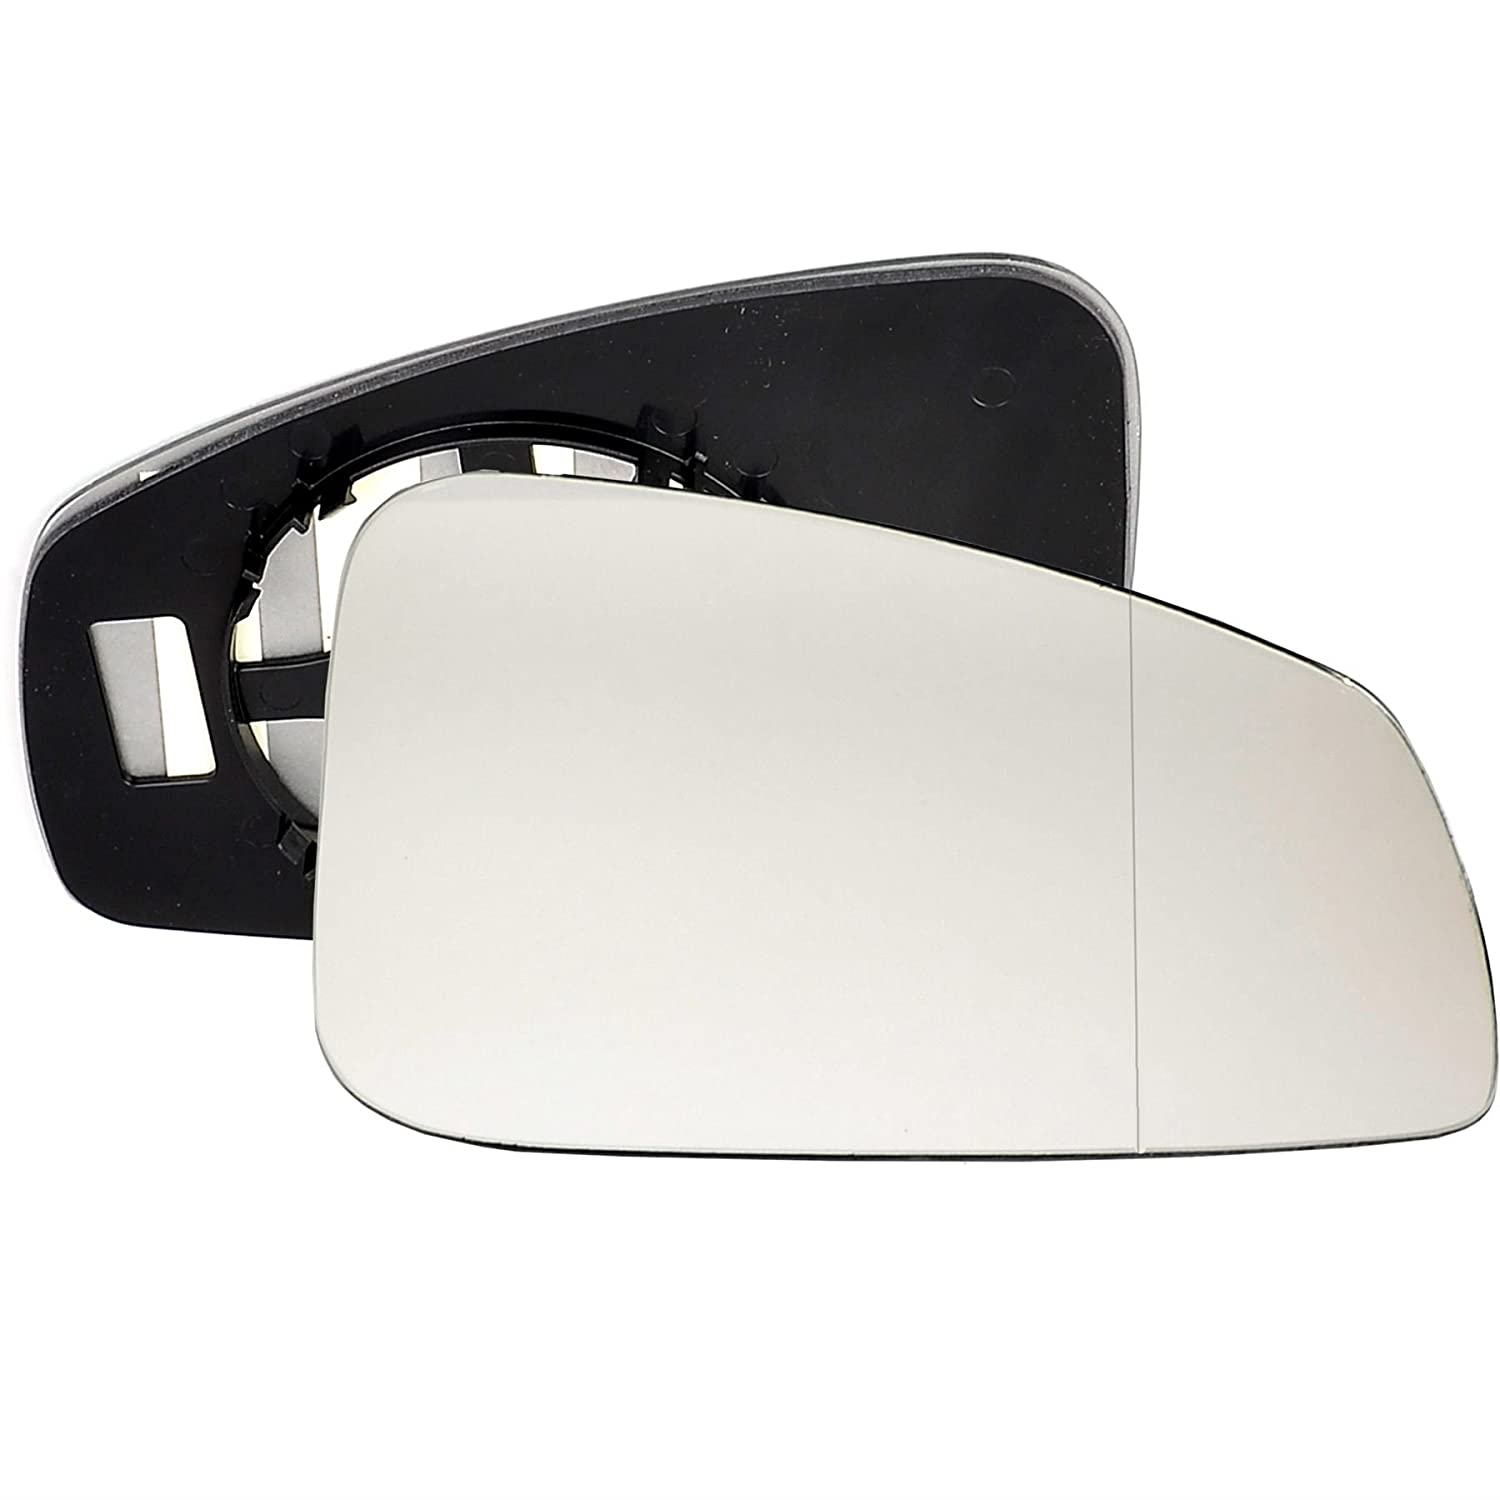 Clip On Driver right hand side Heated wing door Silver mirror glass with backing plate #W-SHY//R-FDSX06